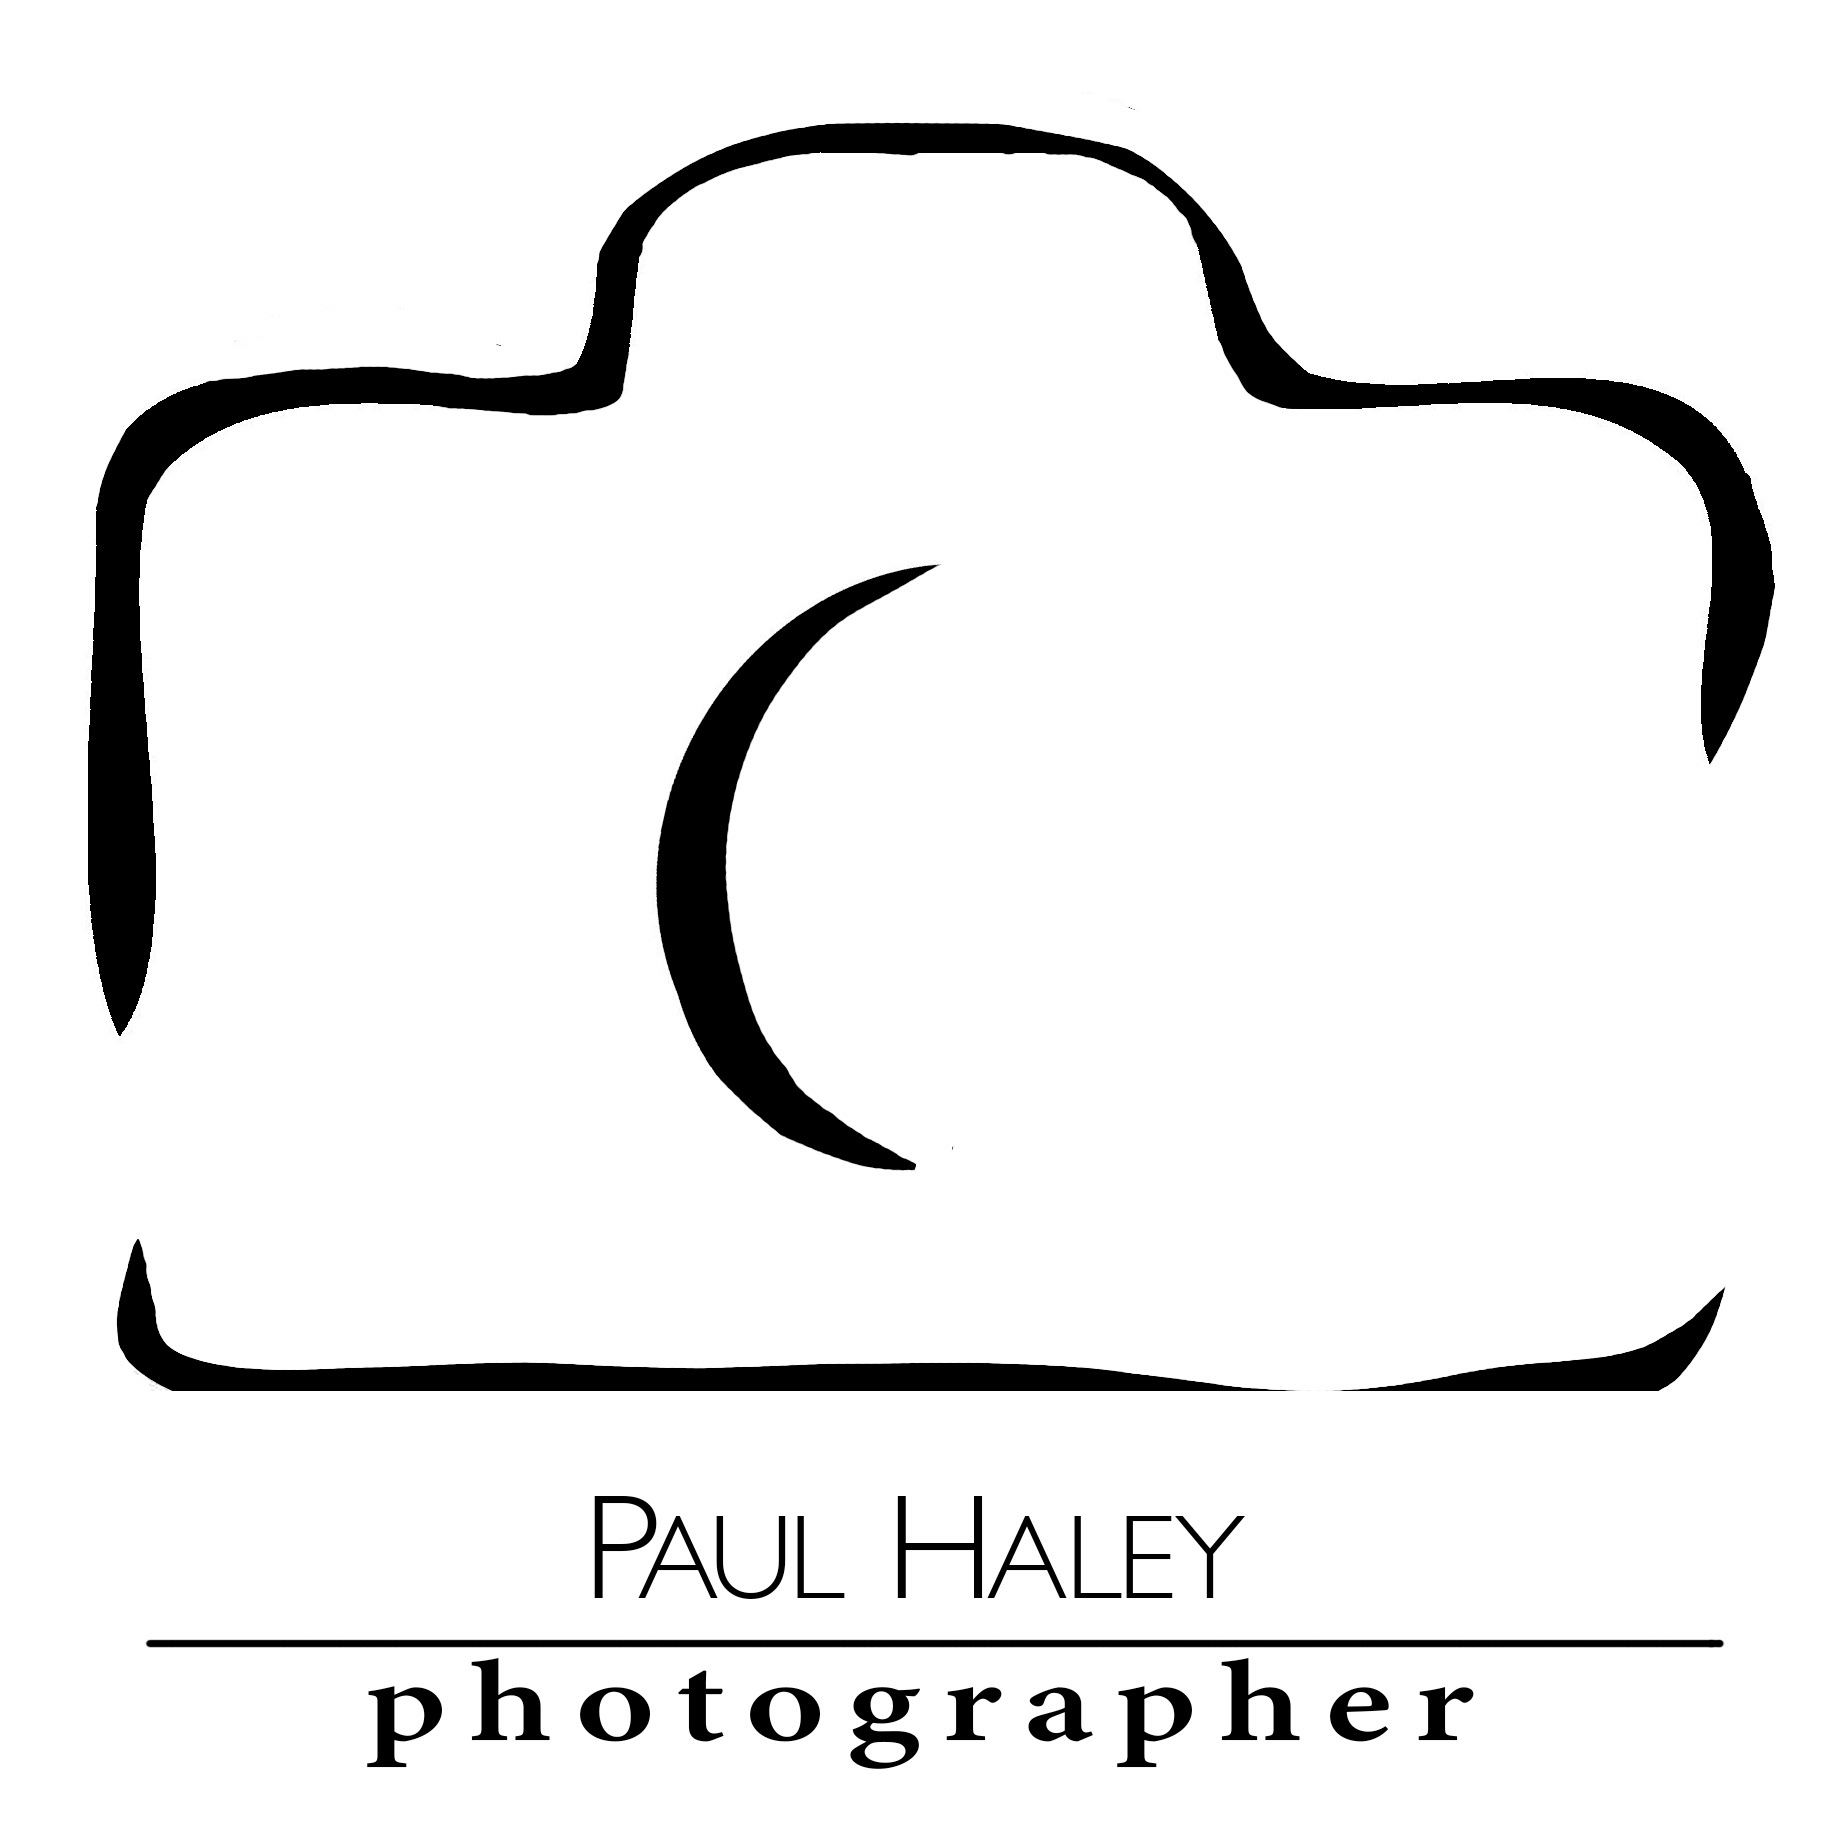 Paul Haley